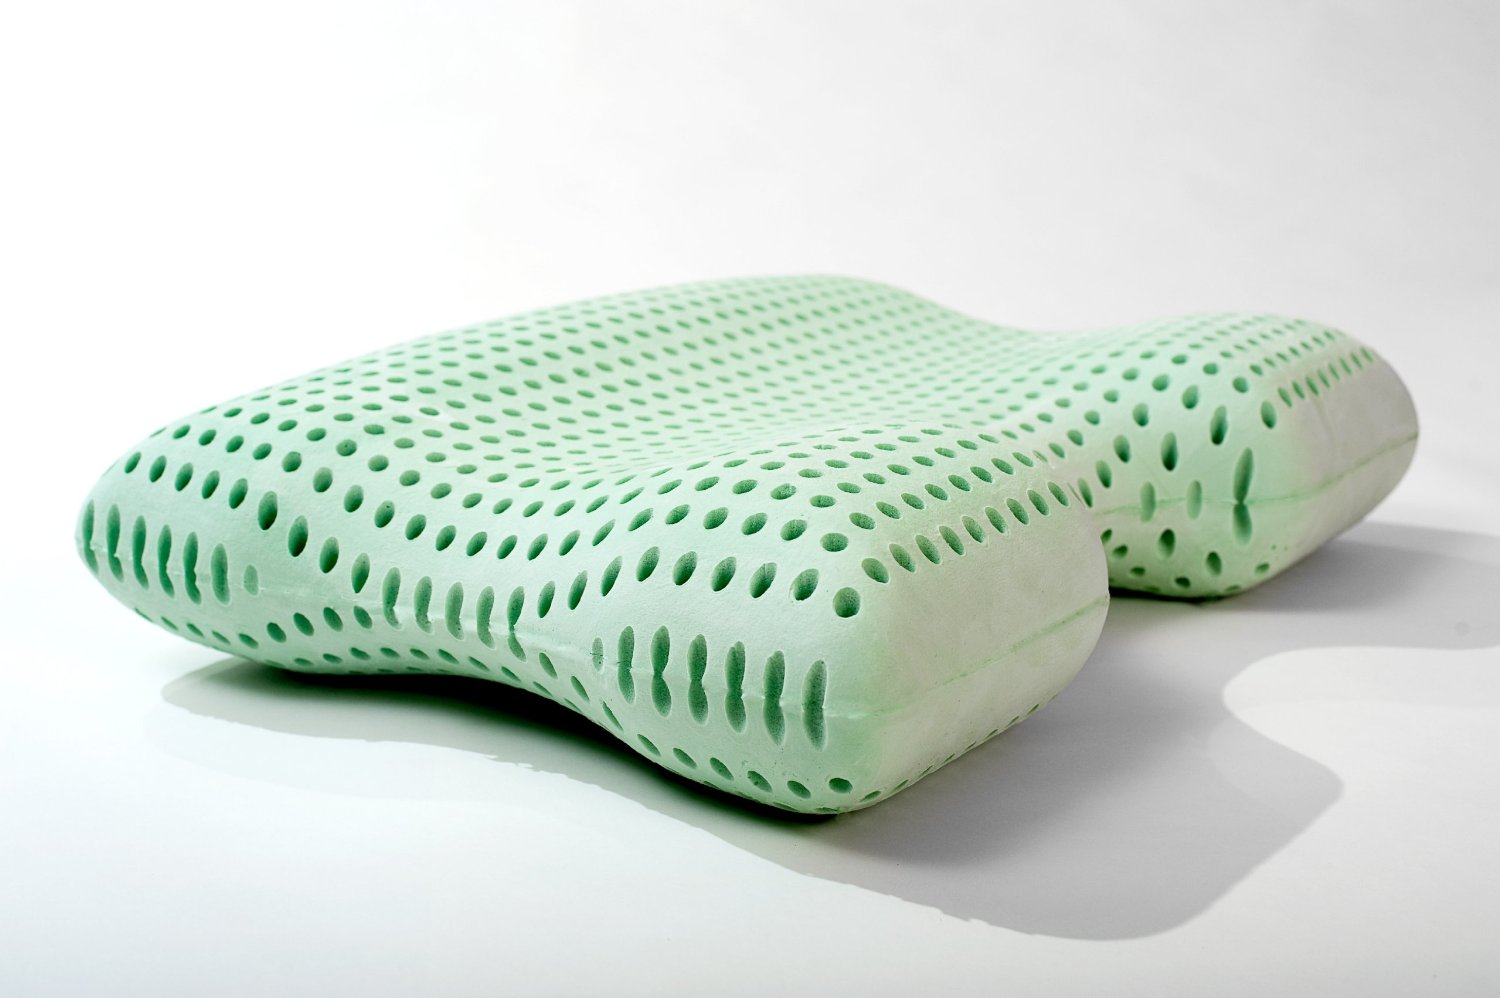 Sleep Joy ViscoFresh Advanced Contour Pillow - Green